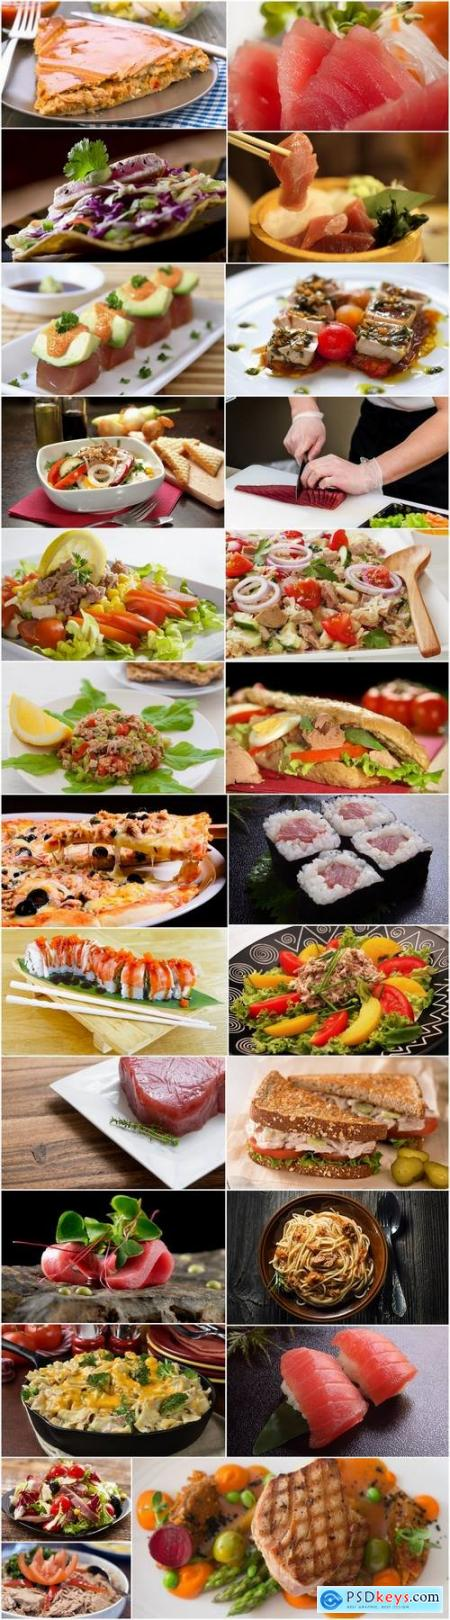 Tuna dishes from it 25 HQ Jpeg